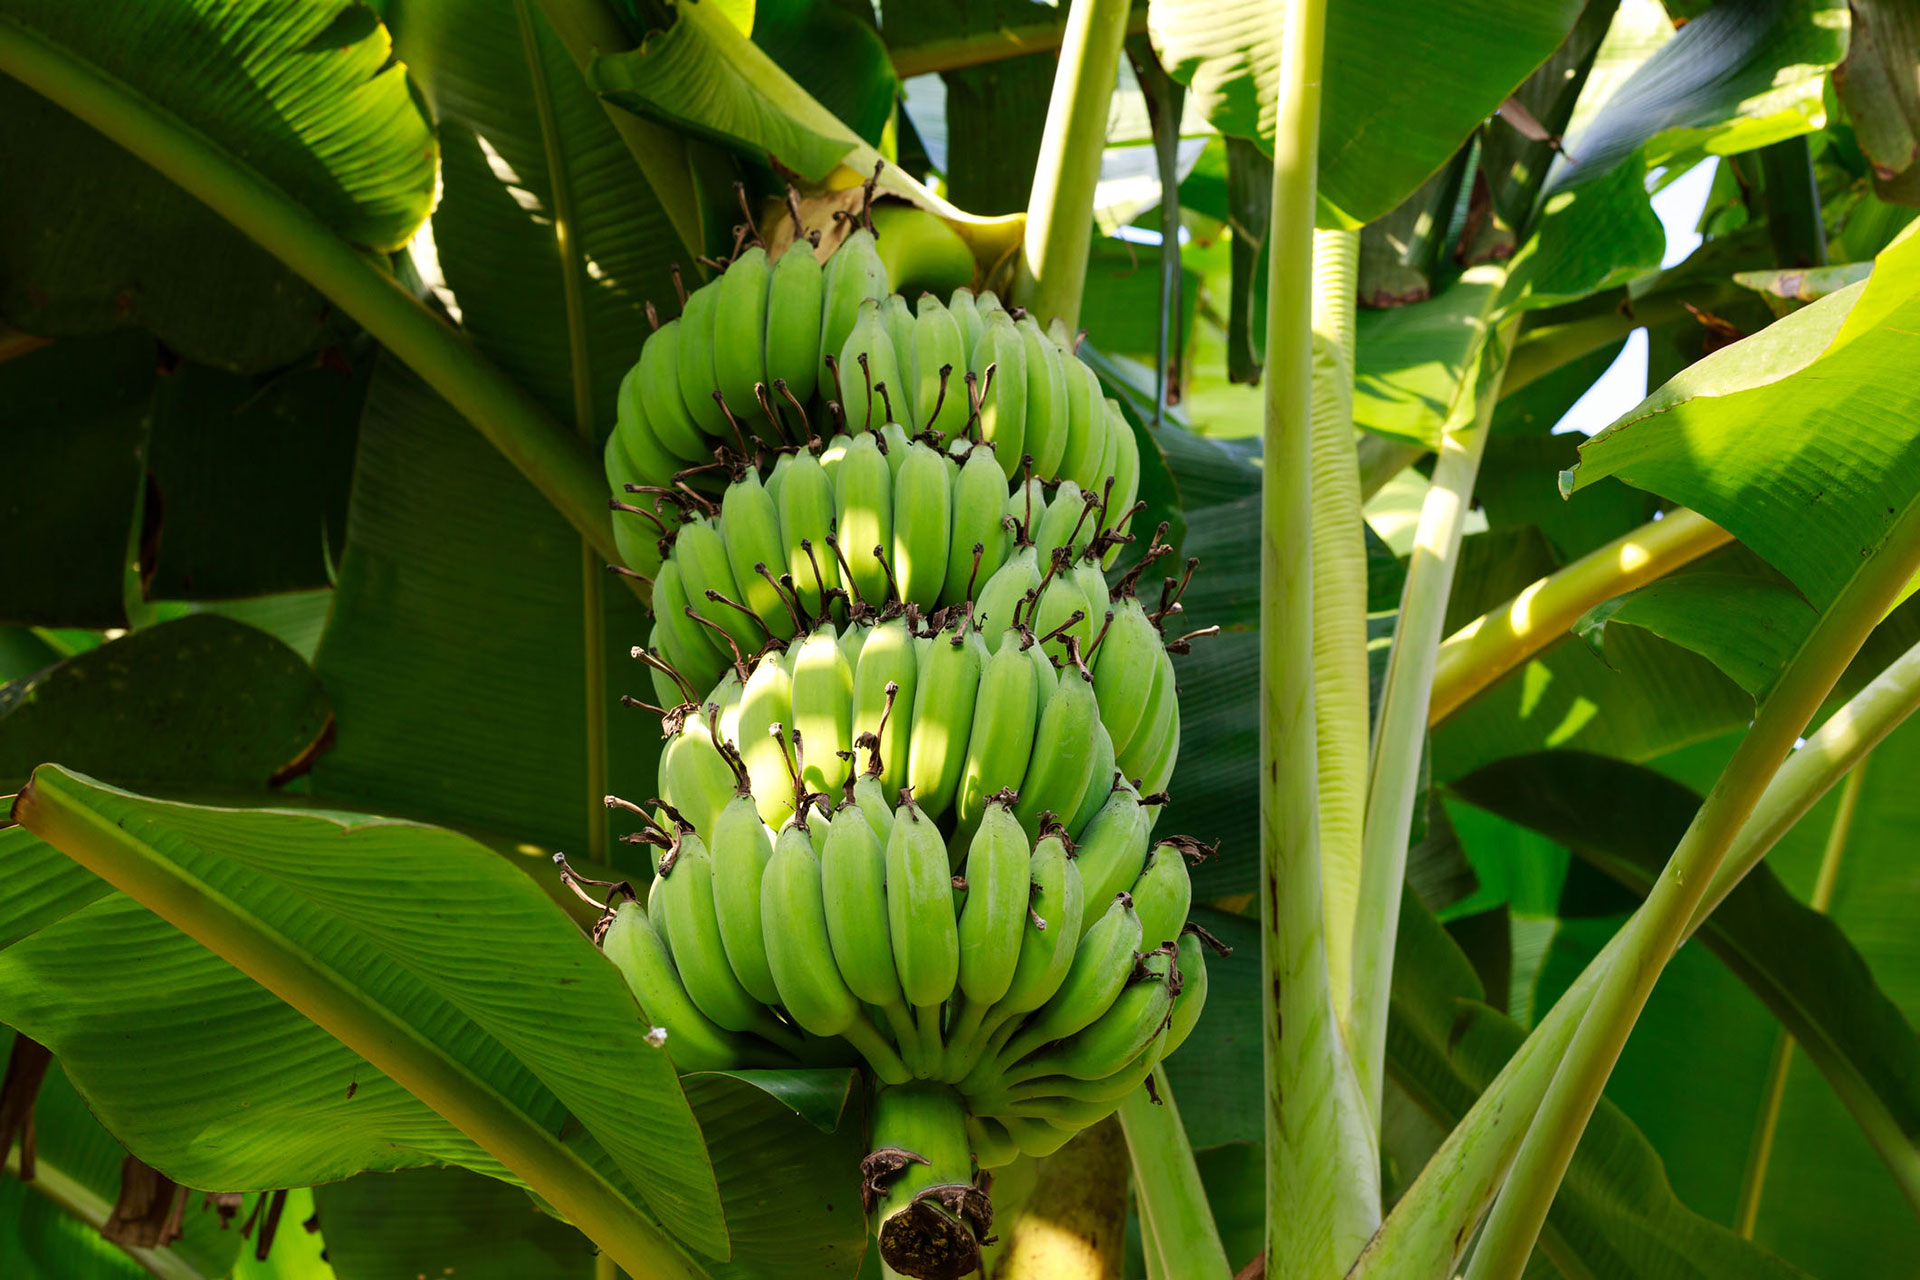 A branch of green bananas on a banana plant.